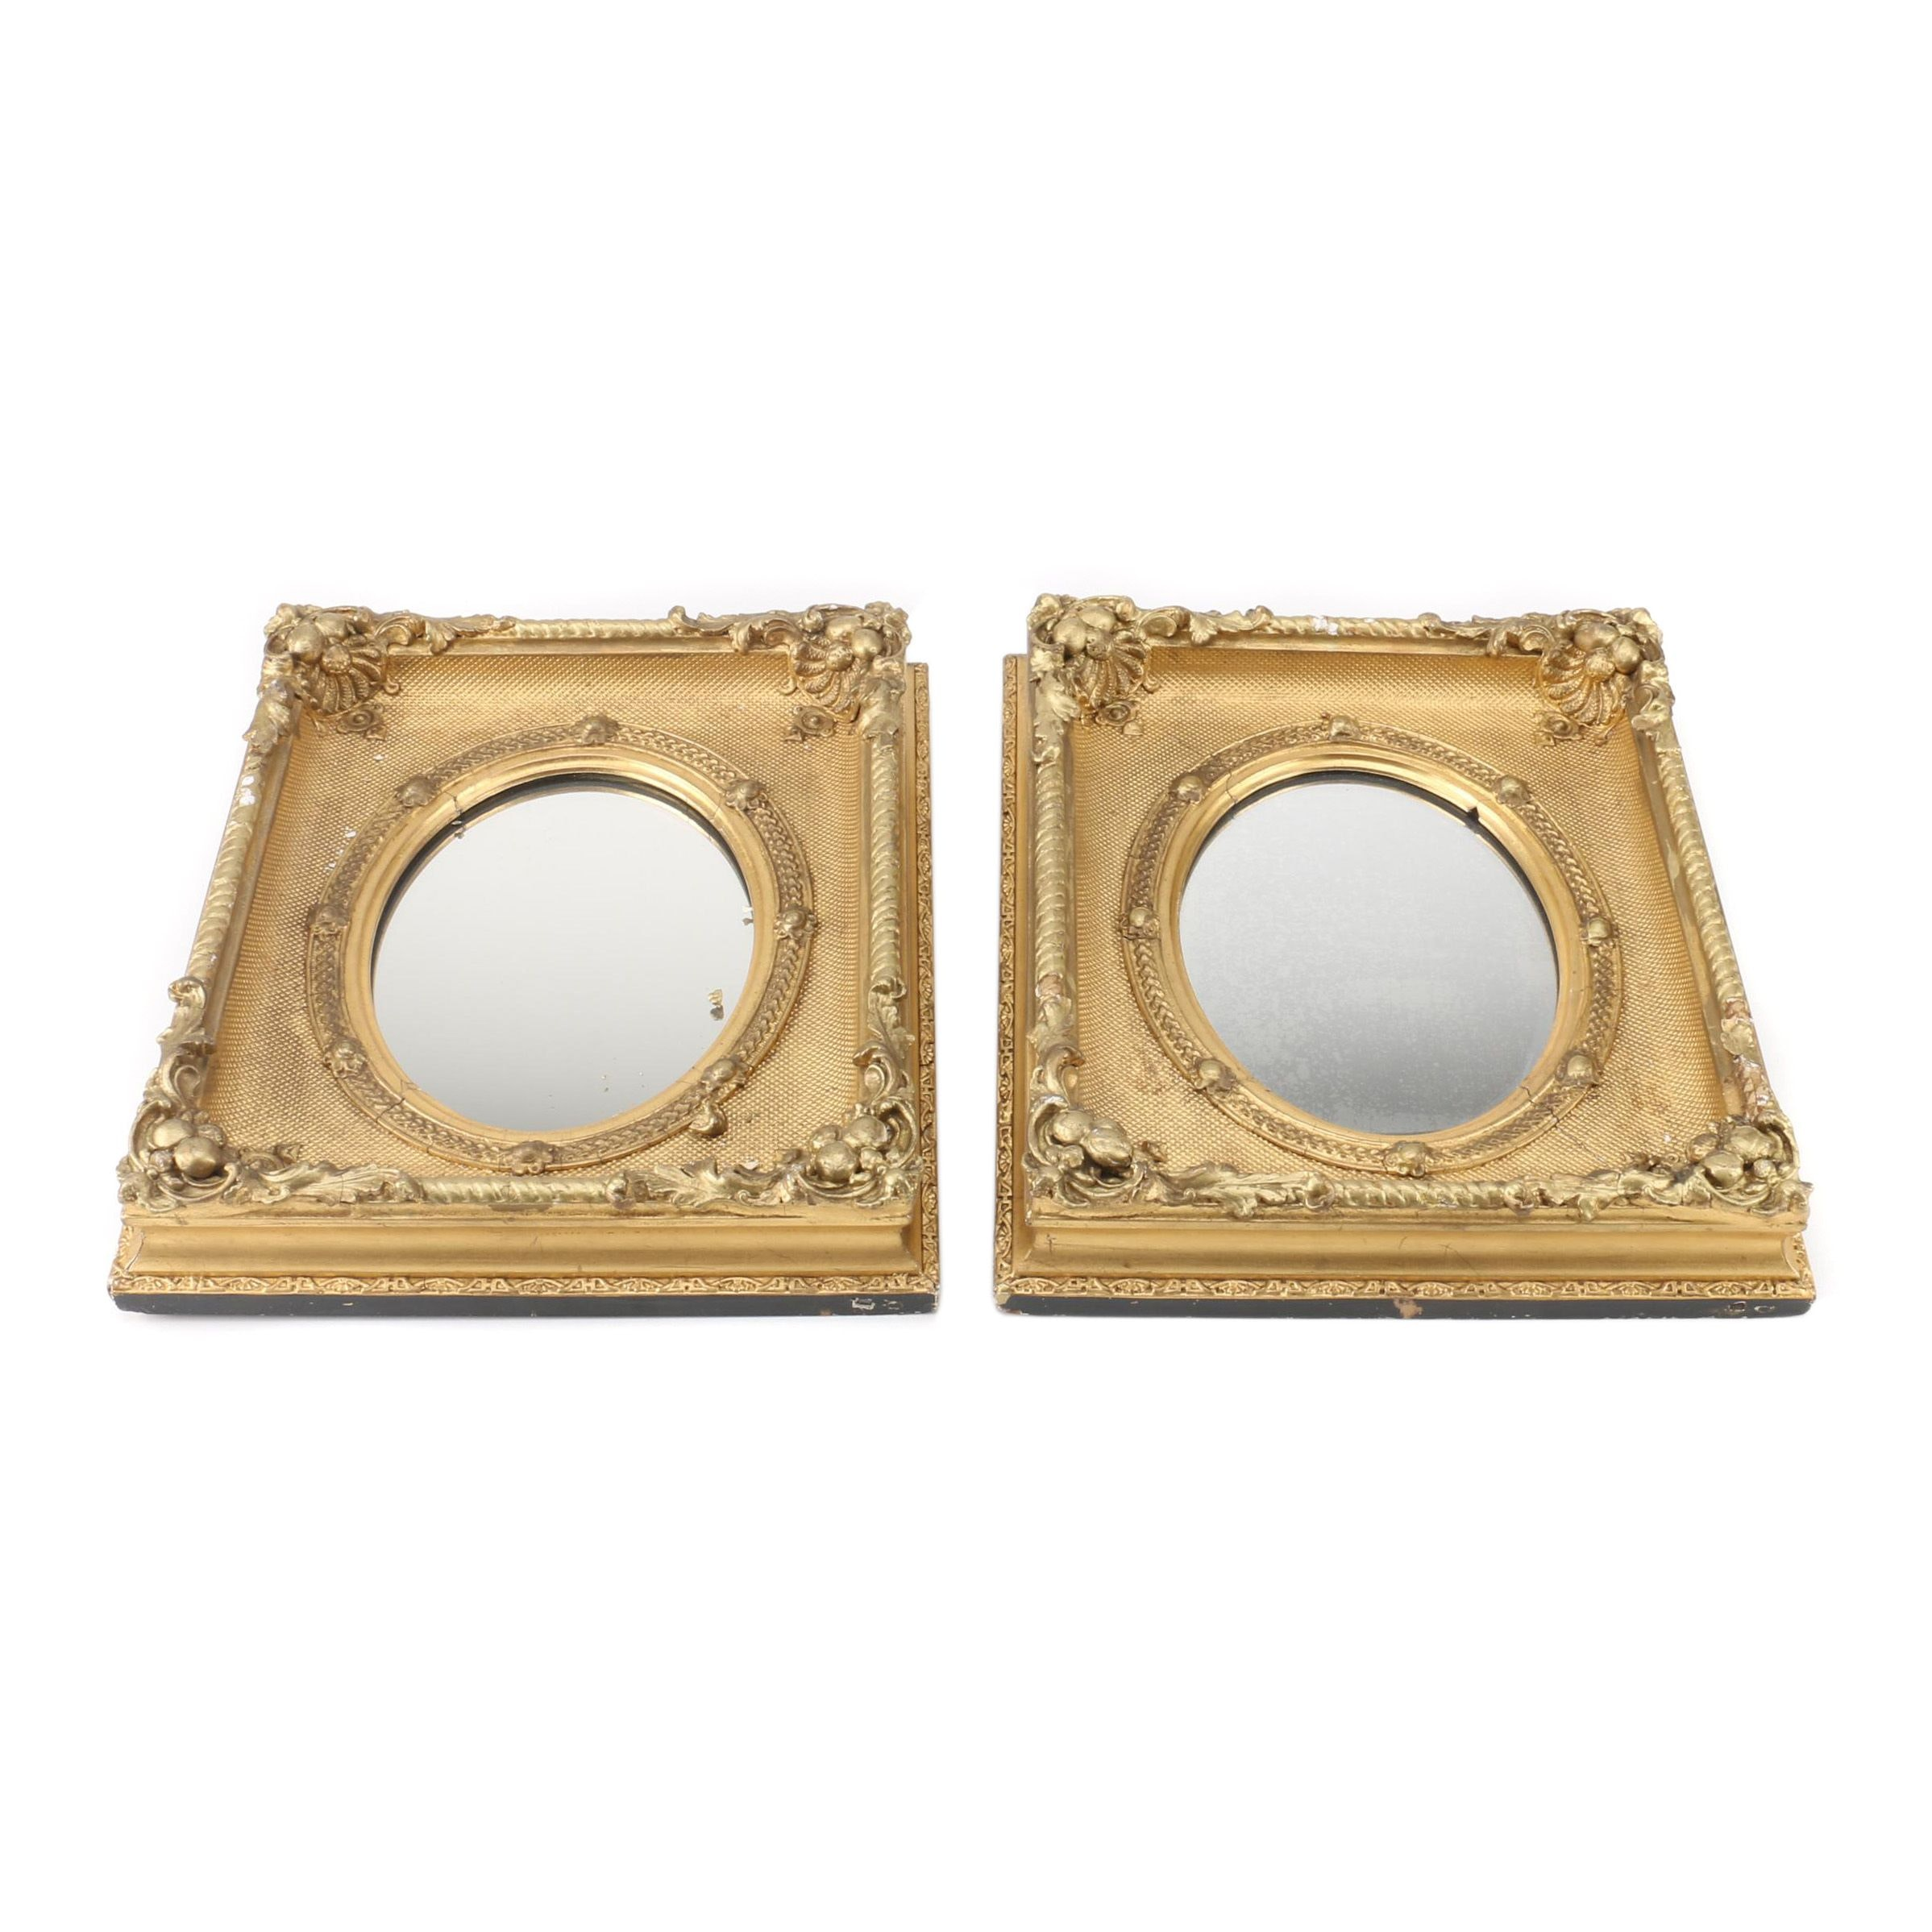 Antique Gold Tone Wall Mirrors, Mid to Late 19th Century